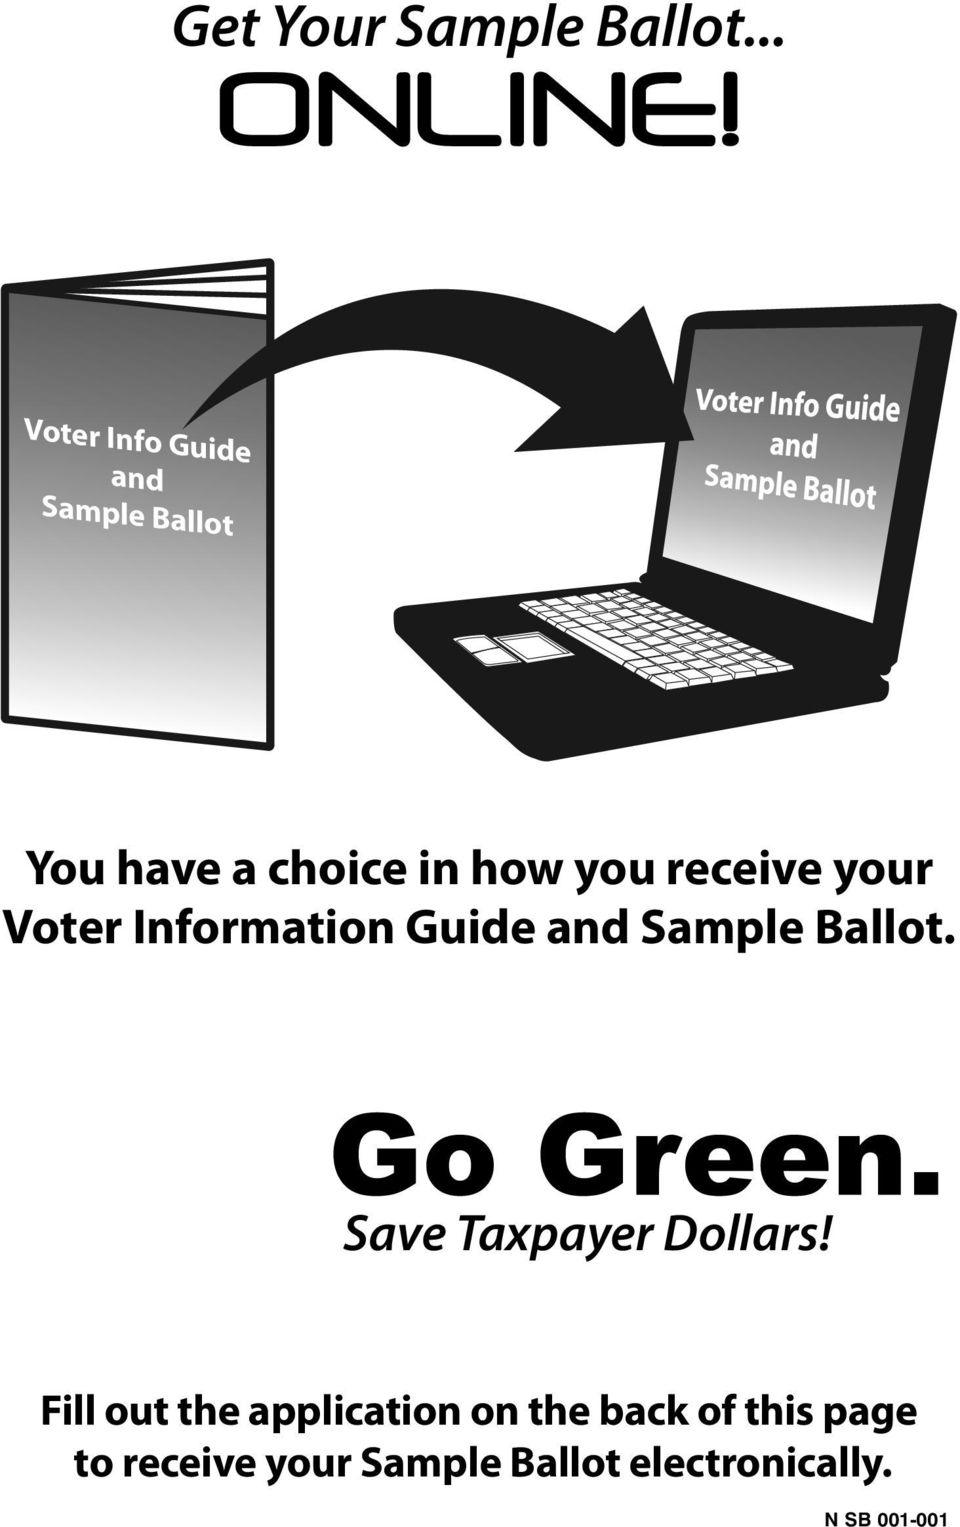 receive your Voter Information Guide and Sample Ballot.